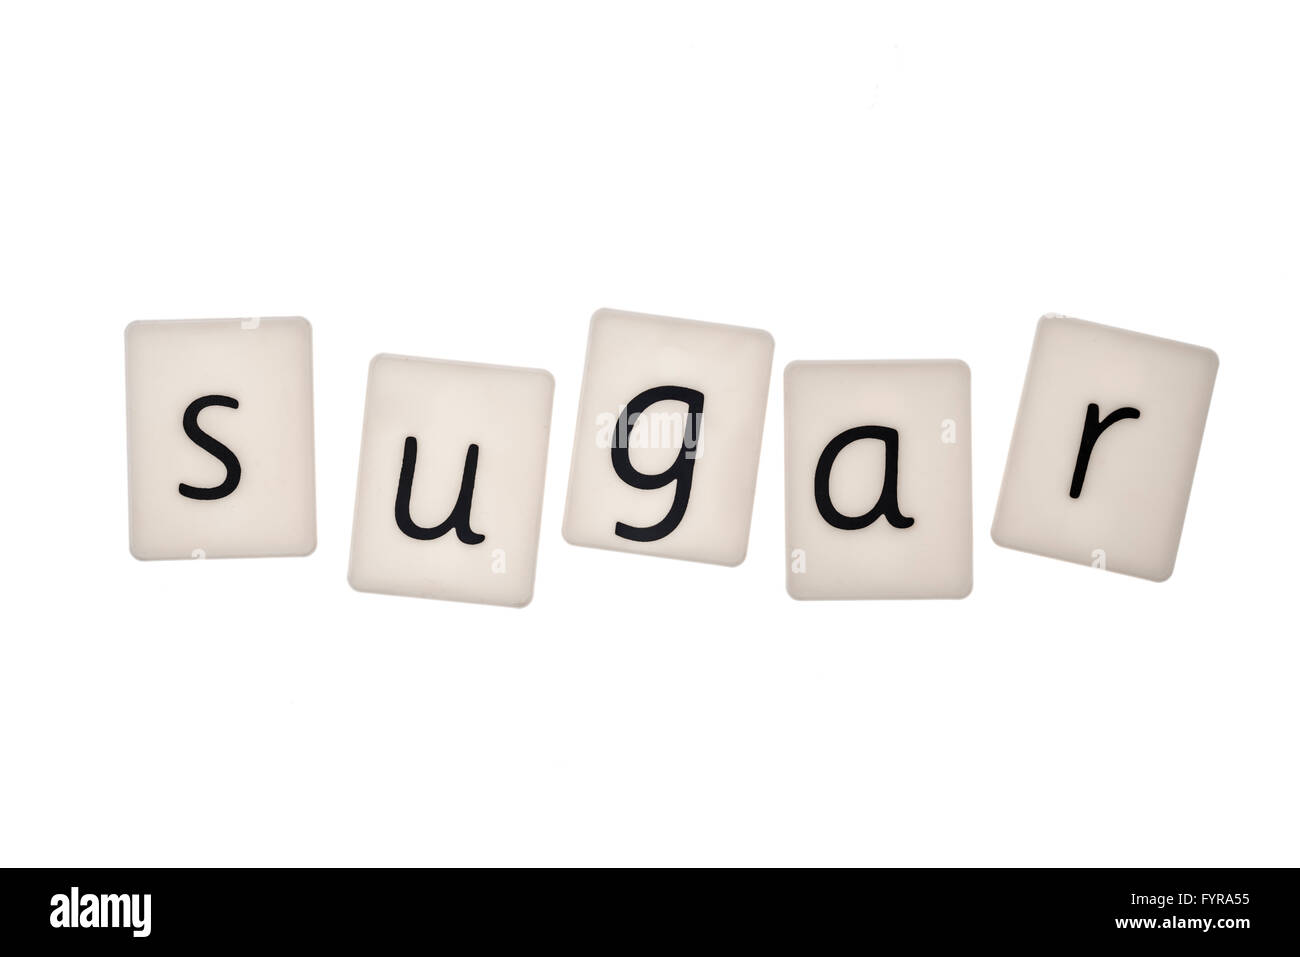 Plastic letters on white background spelling the word sugar - Stock Image